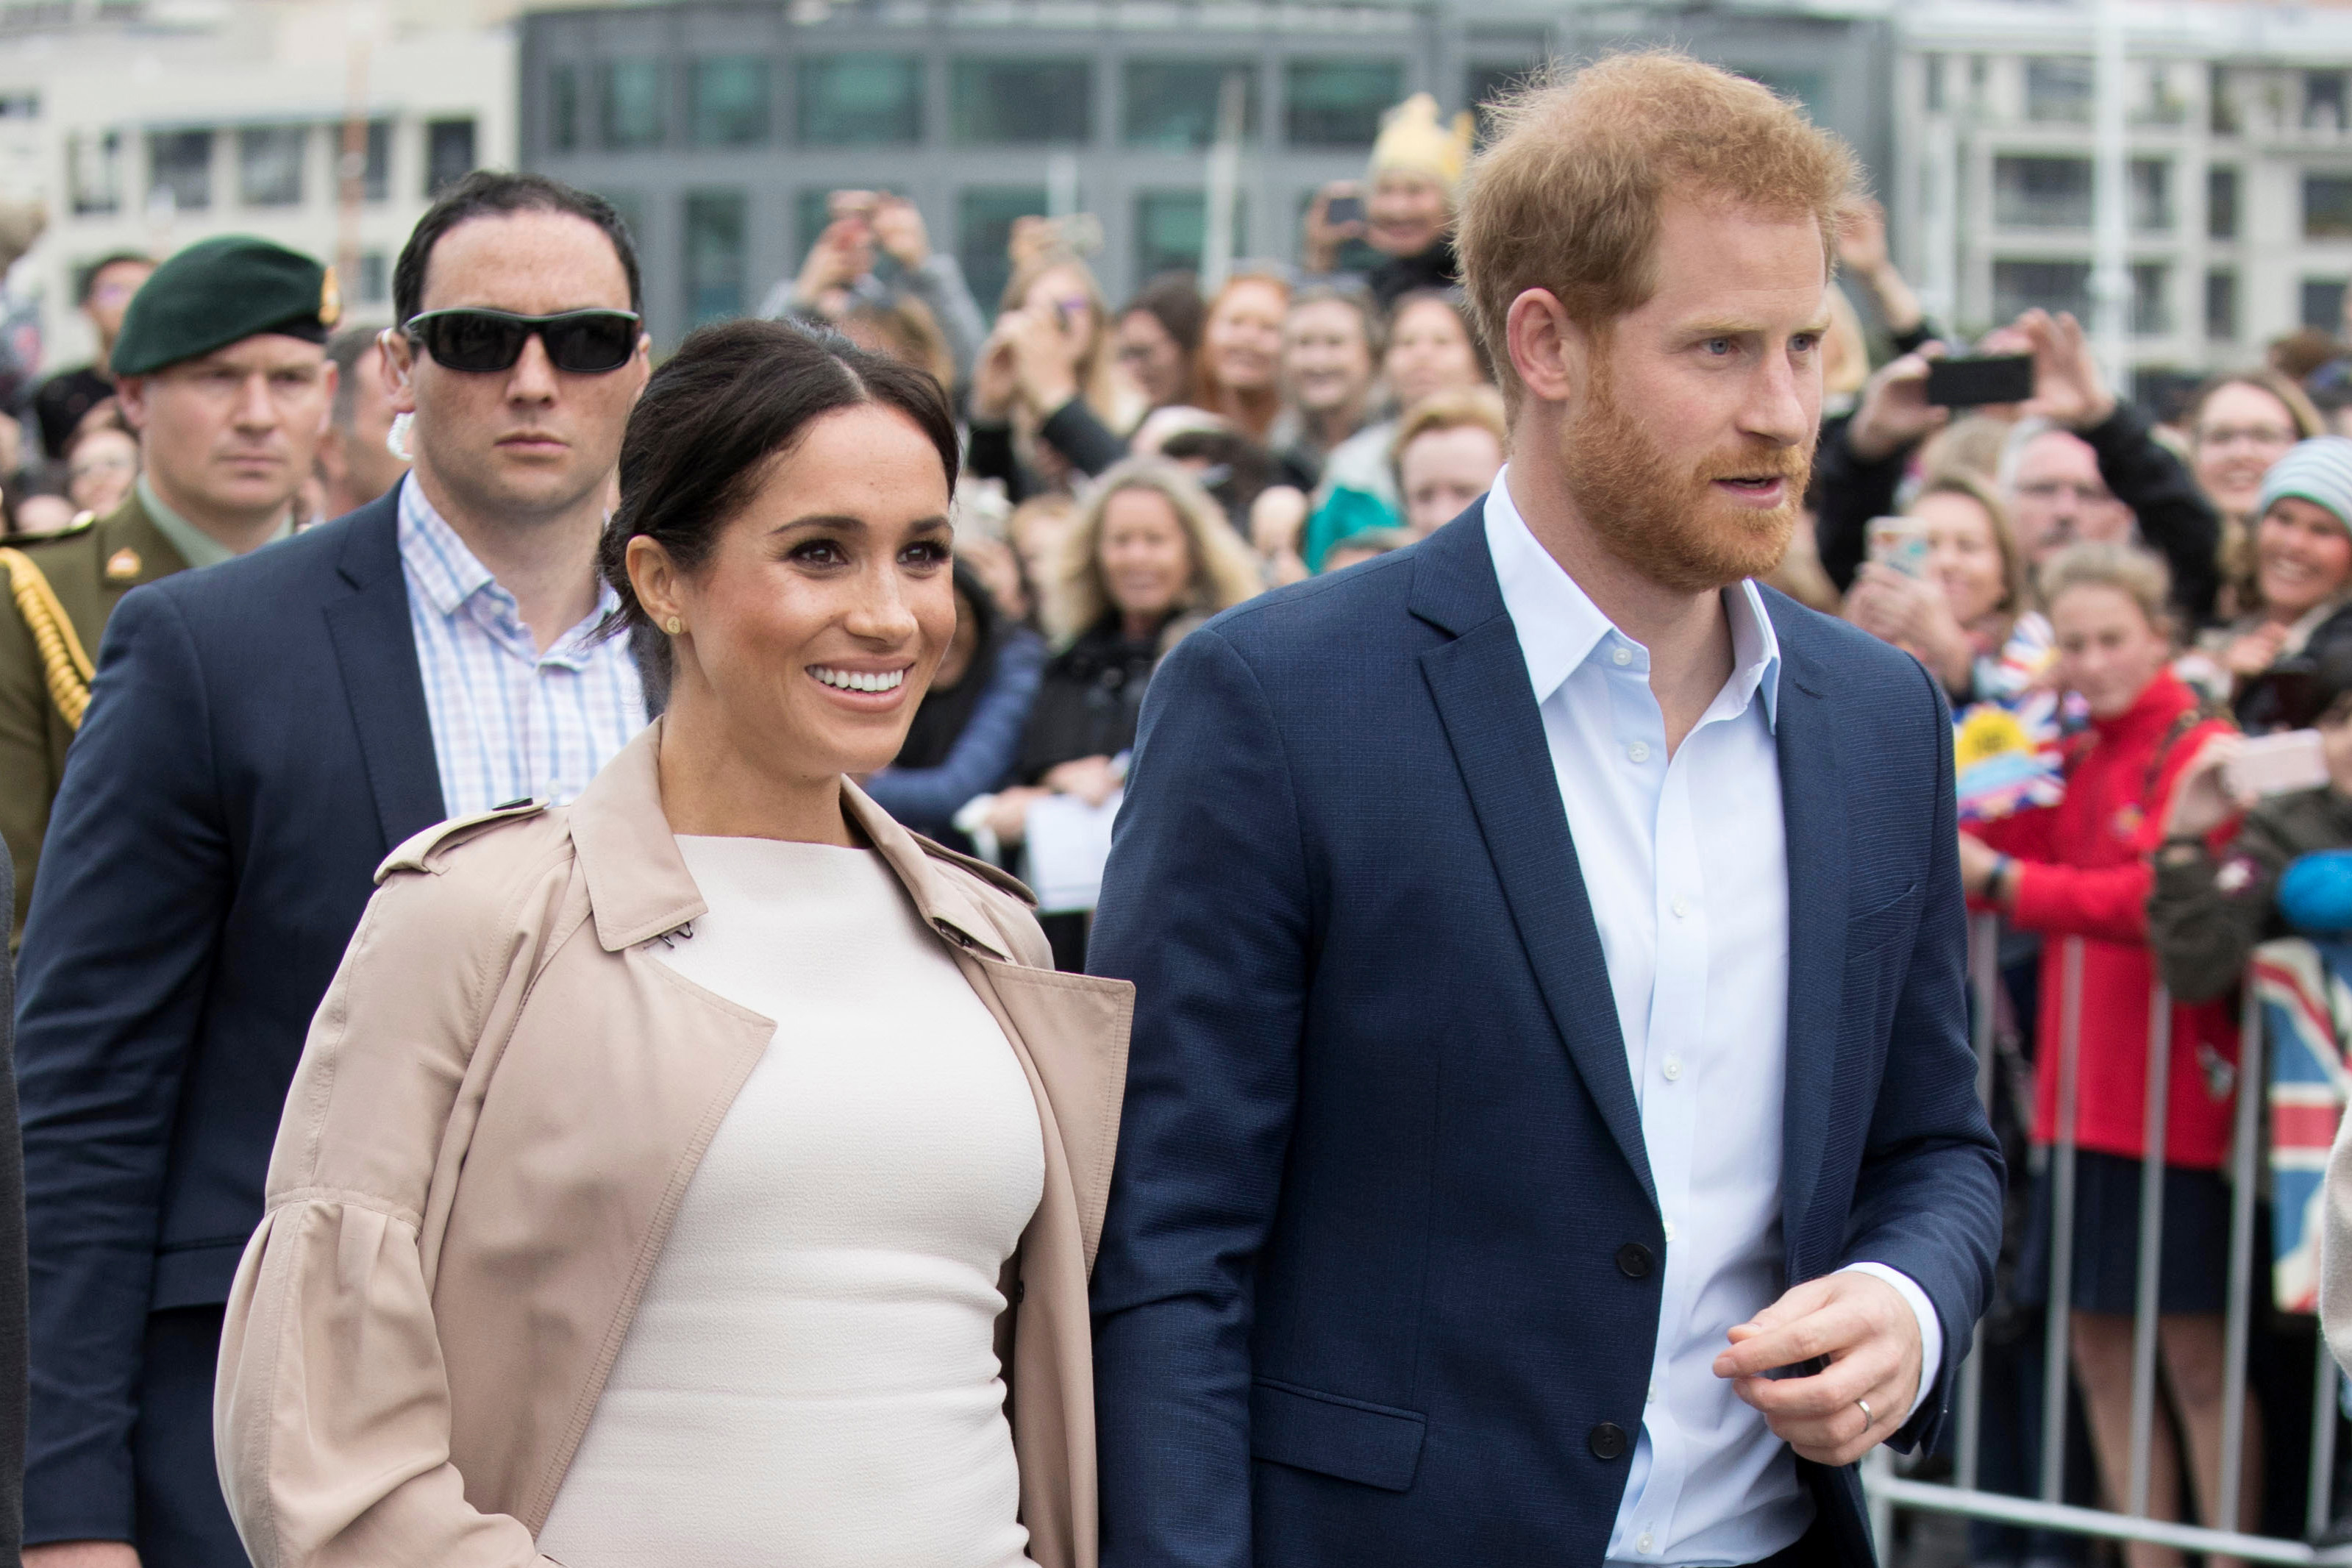 Prince Harry Reportedly Cracked a Joke About Meghan Markle